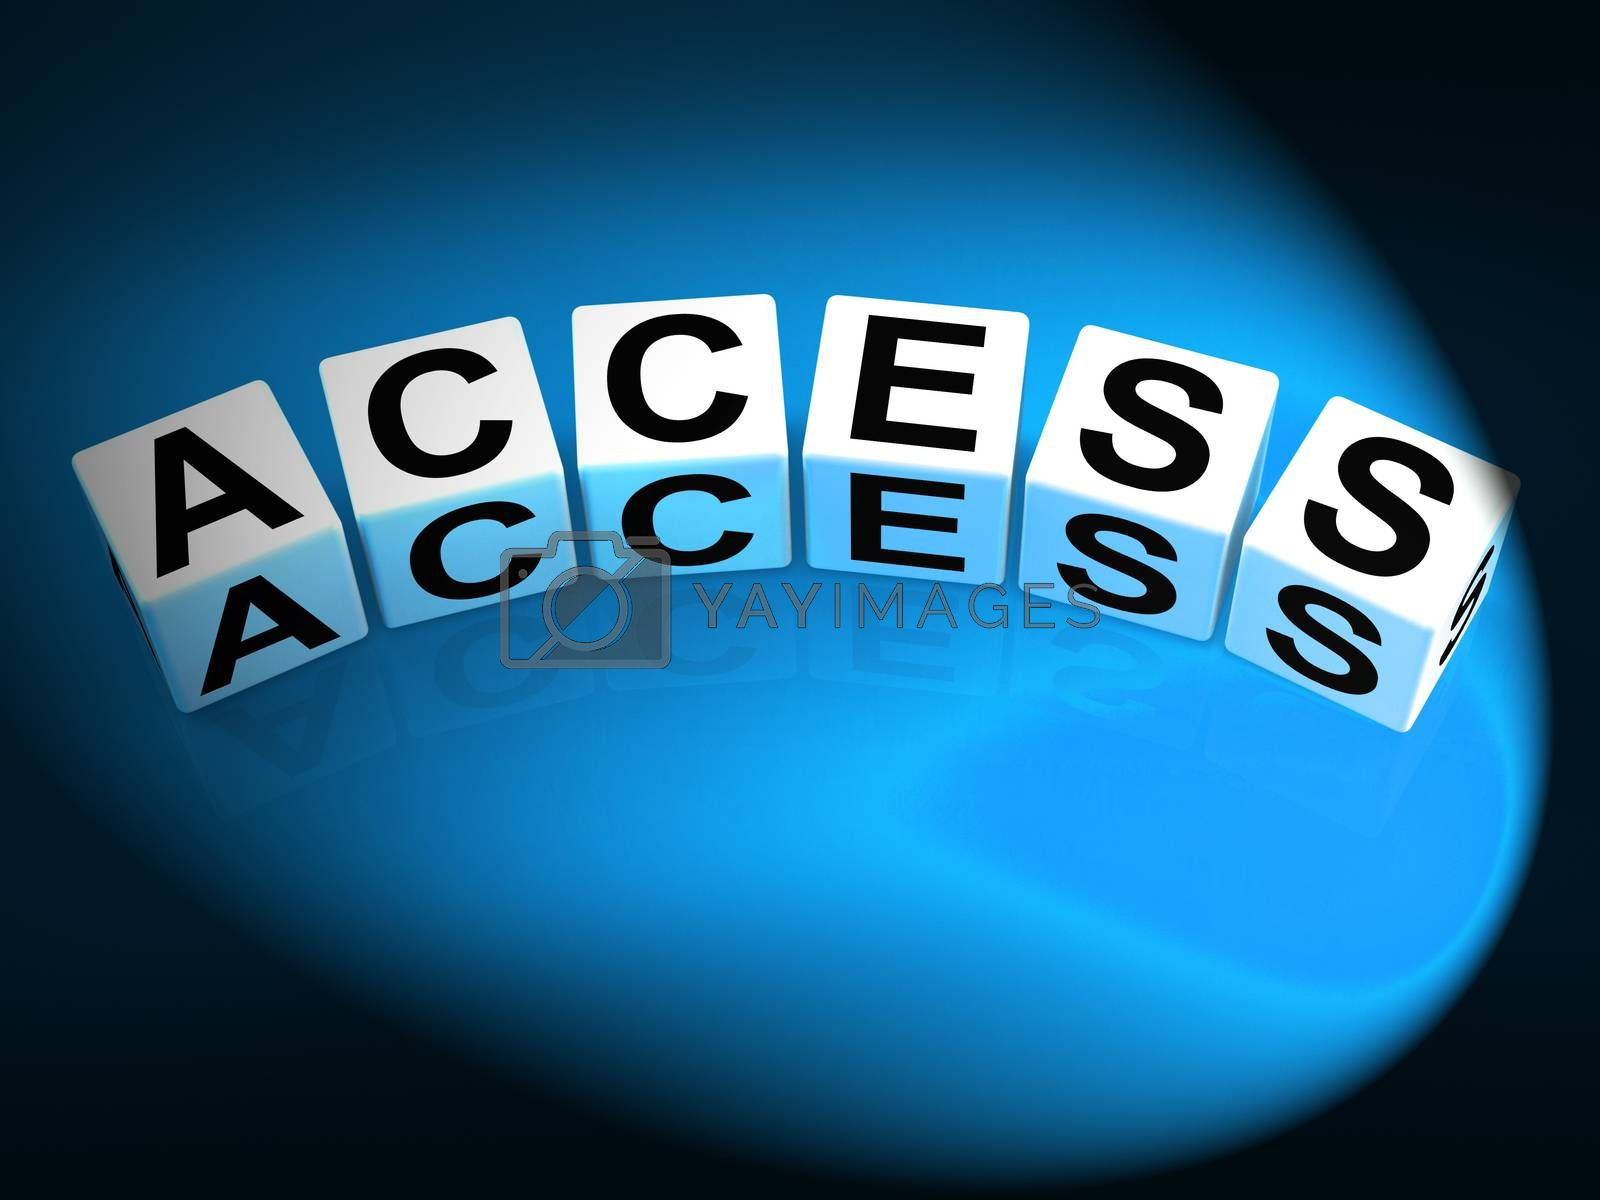 Access Dice Show Admittance Accessibility and Entry by stuartmiles